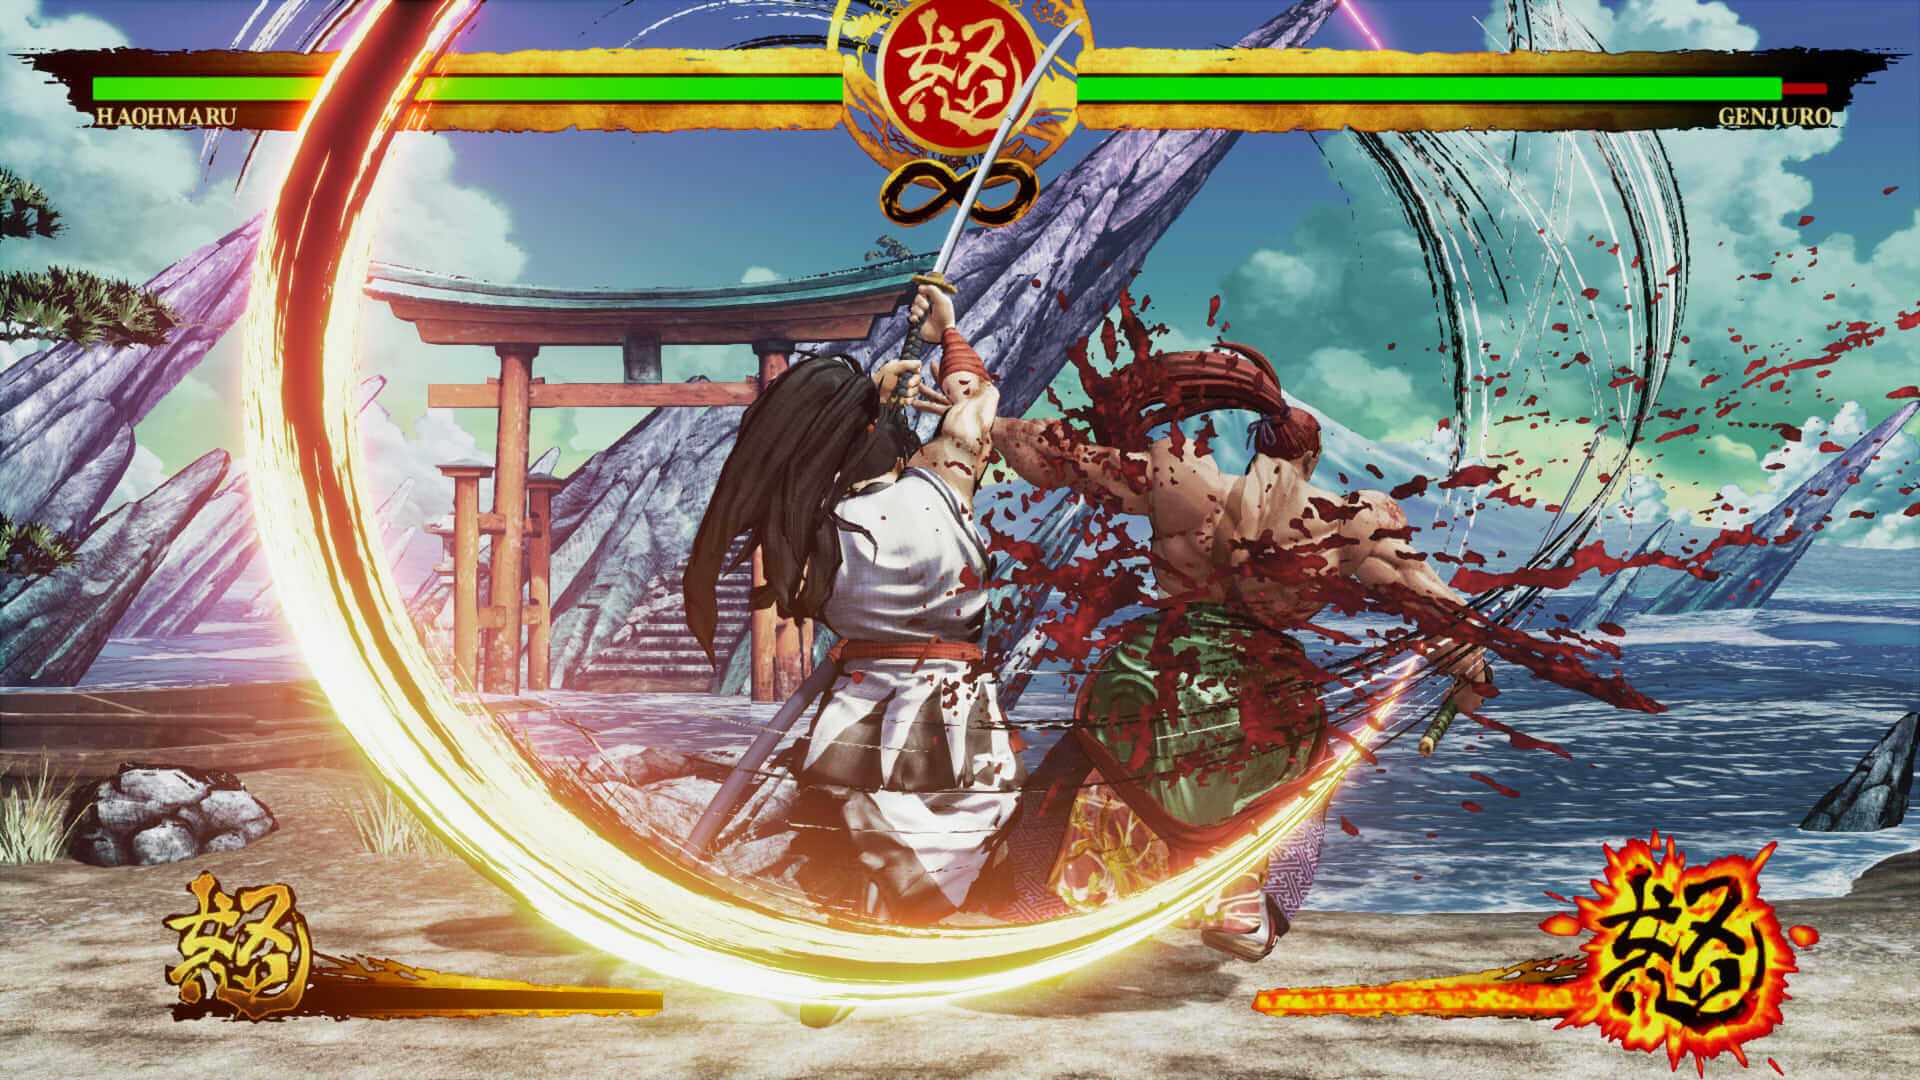 Samurai Shodown PC ps4, xboxOne, Stadia, NSwitch,